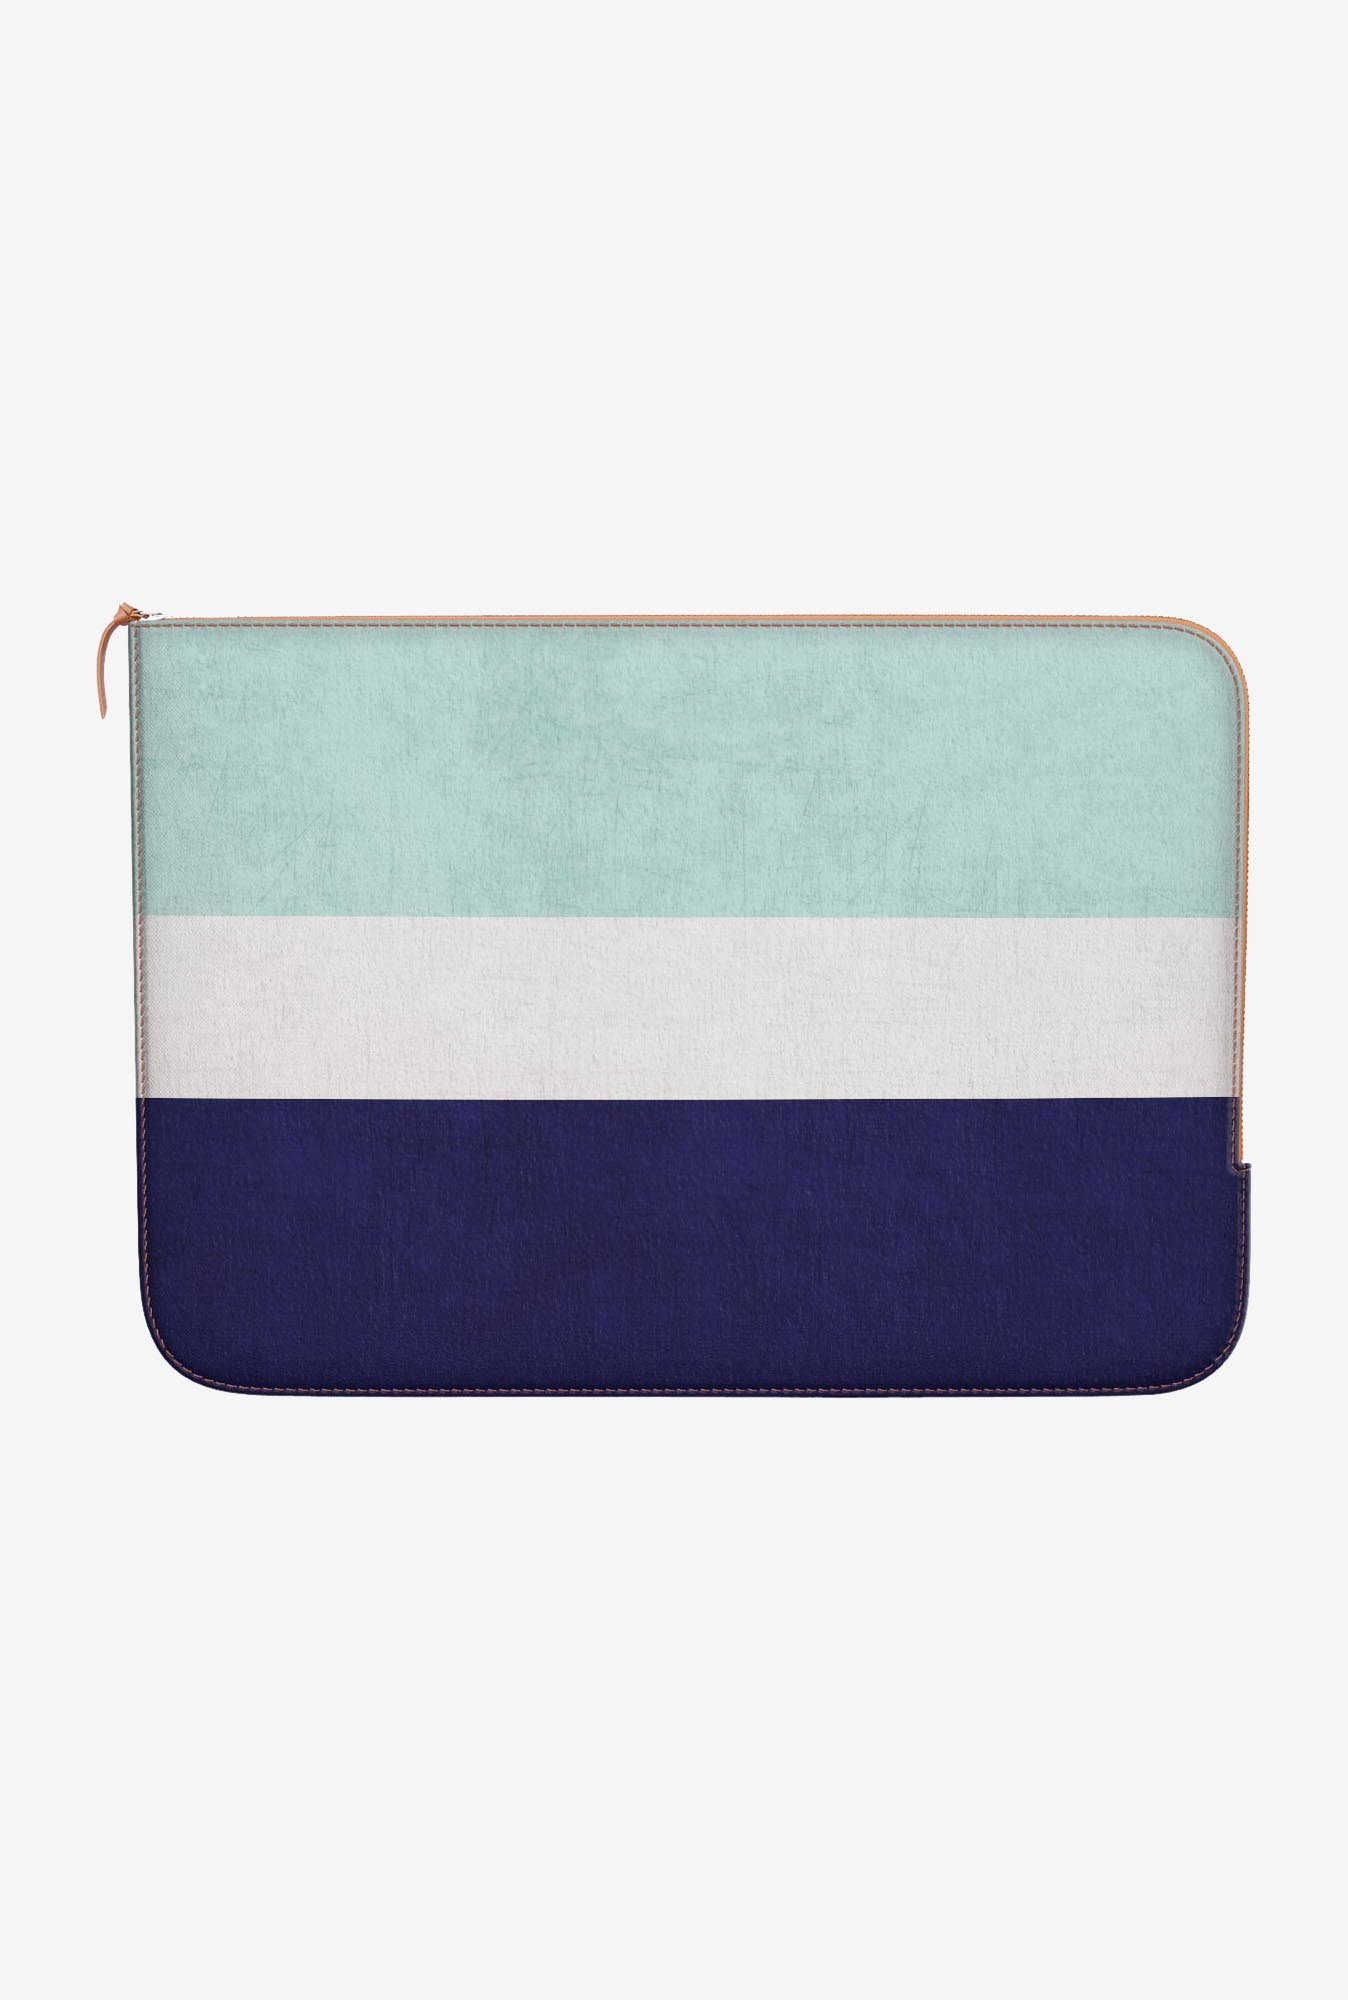 DailyObjects Ocean Classic MacBook Air 13 Zippered Sleeve